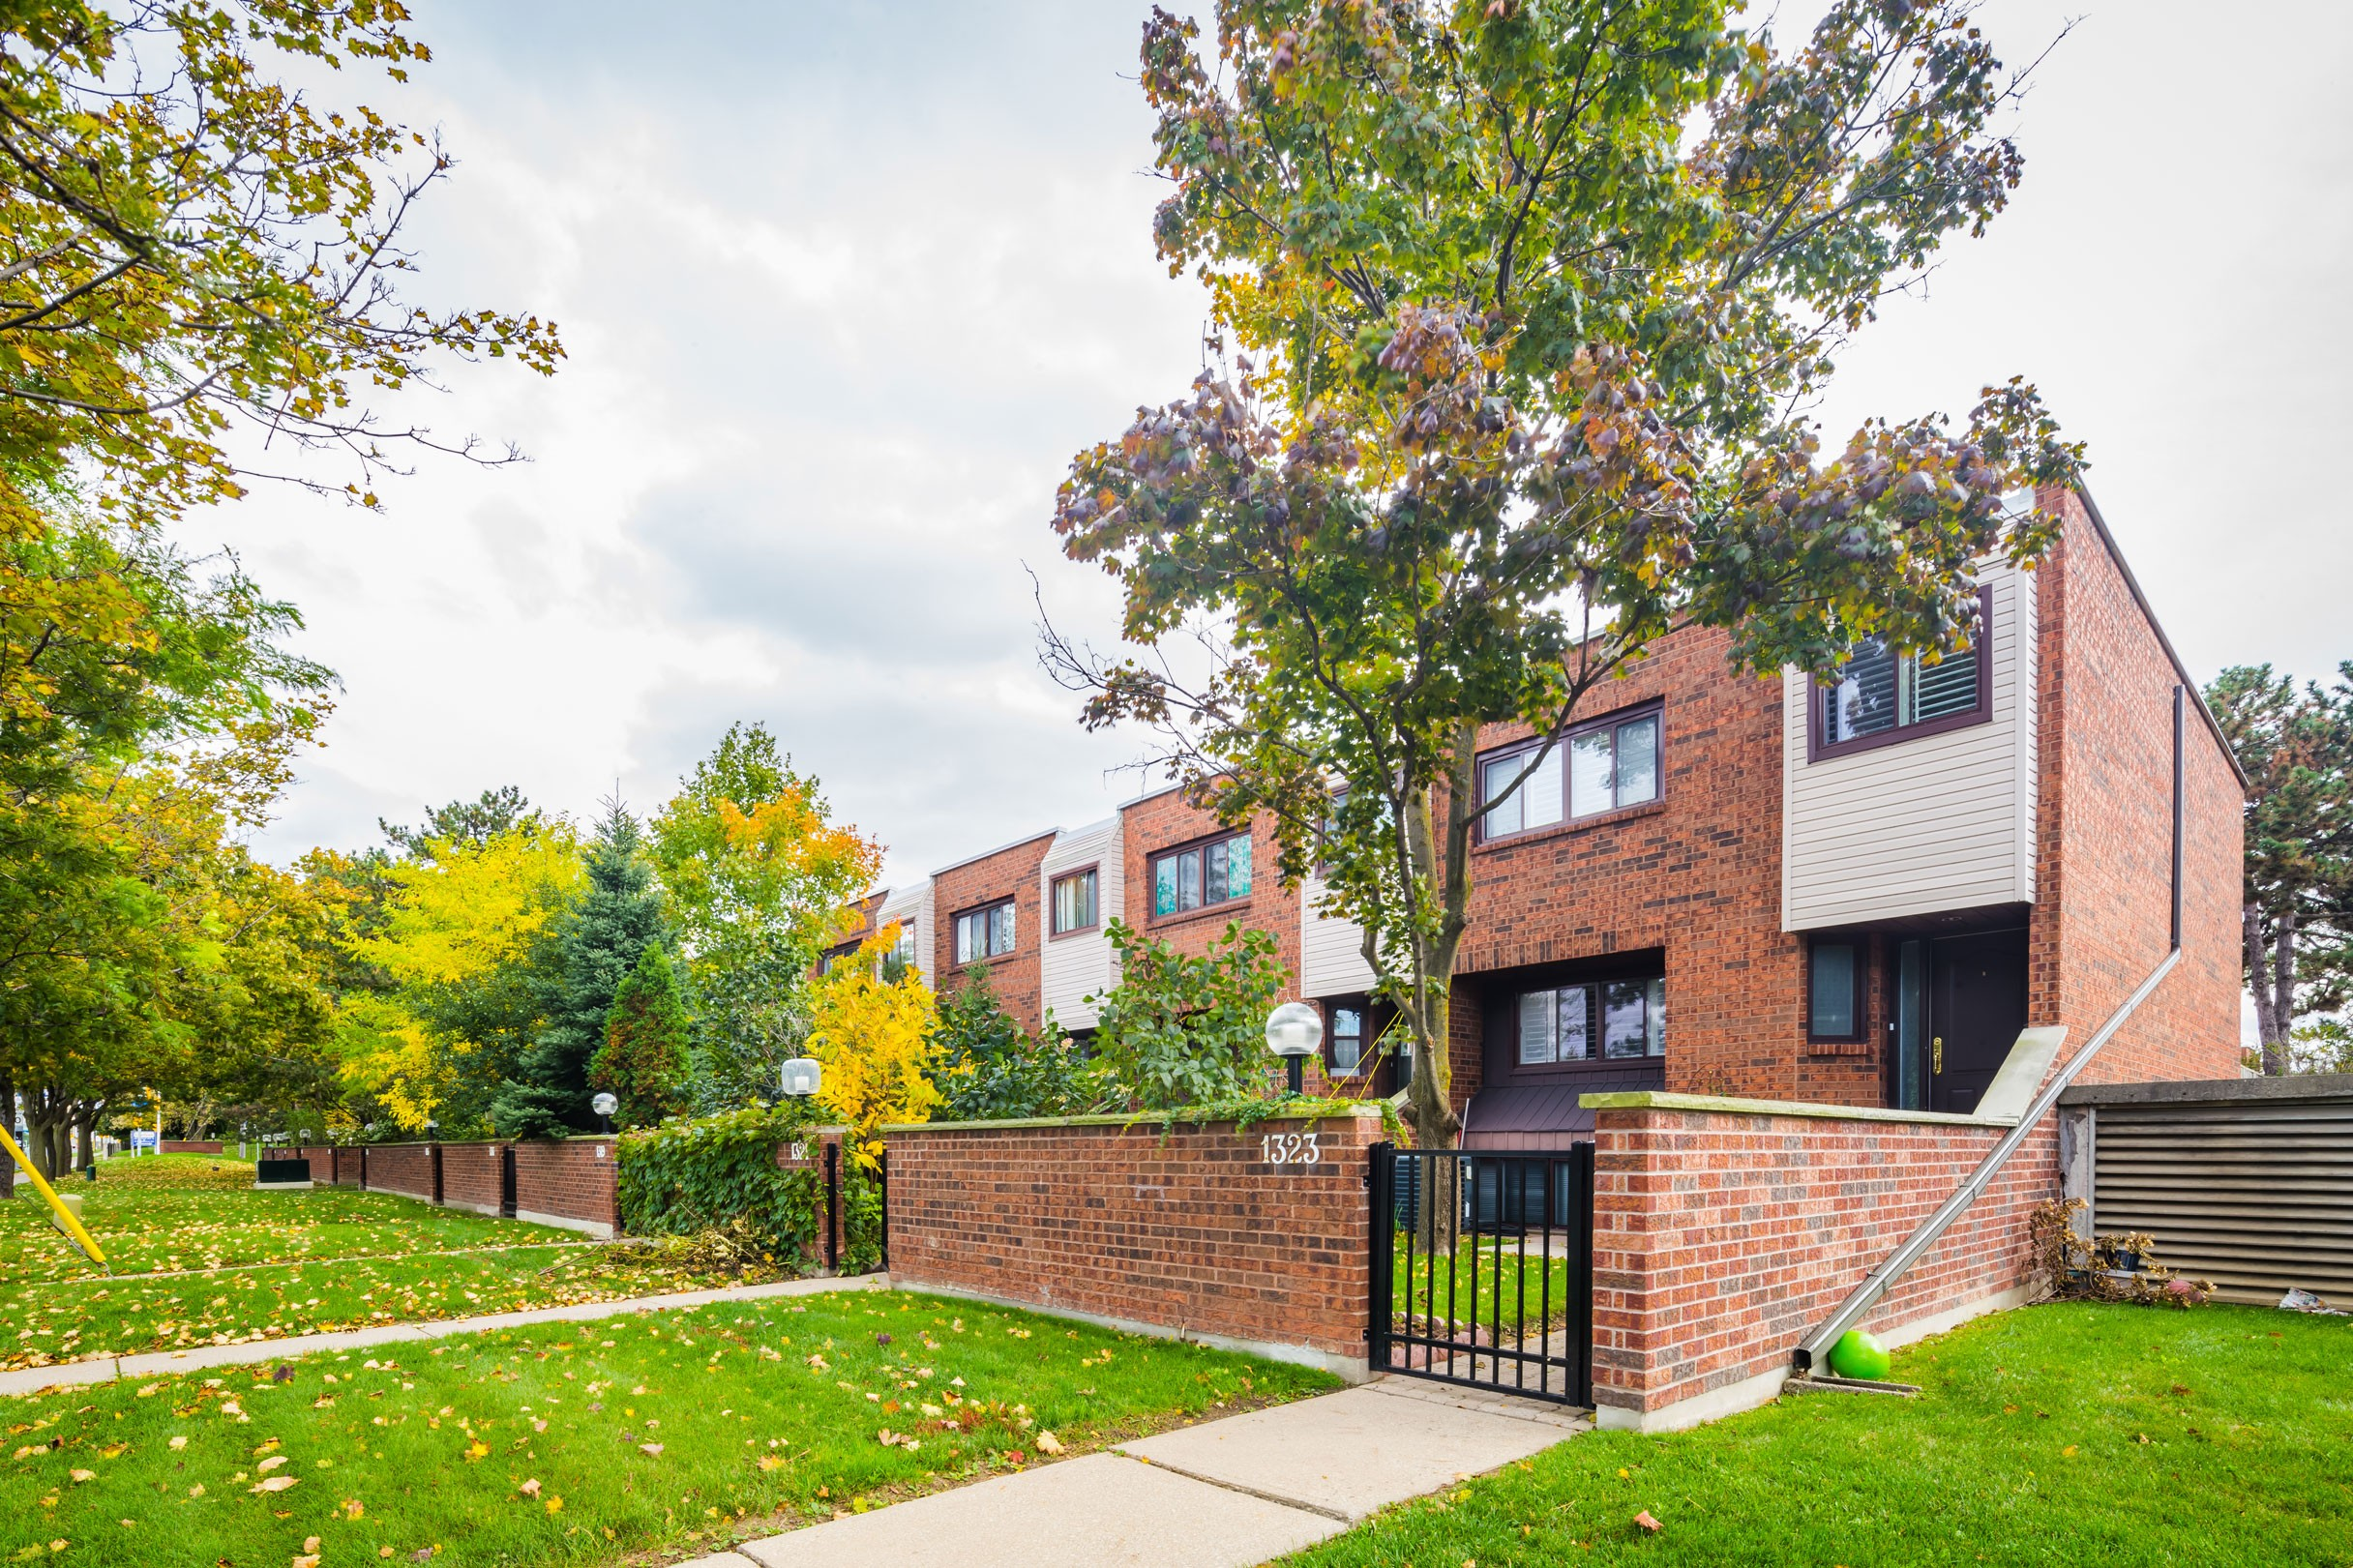 1329 Steeles Townhouses at 296 Torresdale Ave, Toronto 0